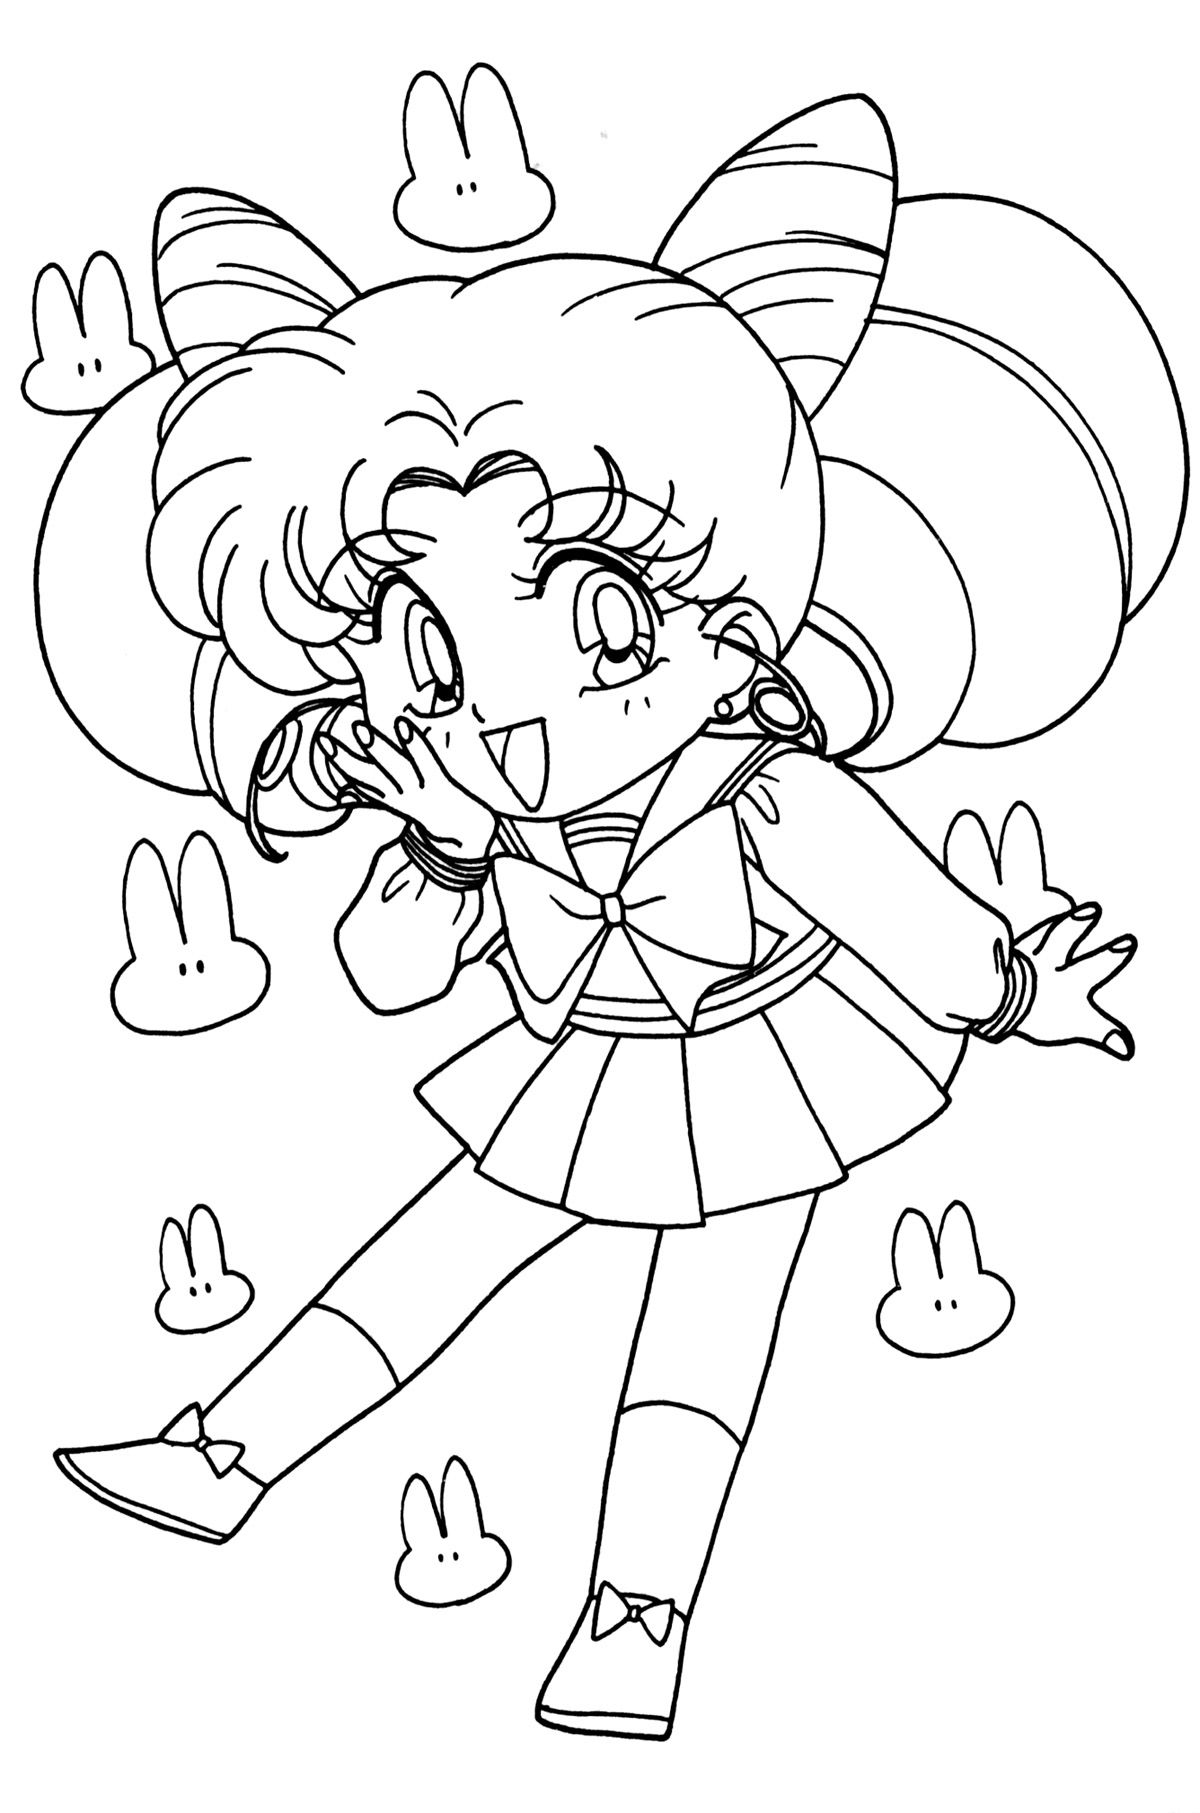 chibi052.jpg (1200×1813) | Coloring pages | Pinterest | Sailor moon ...